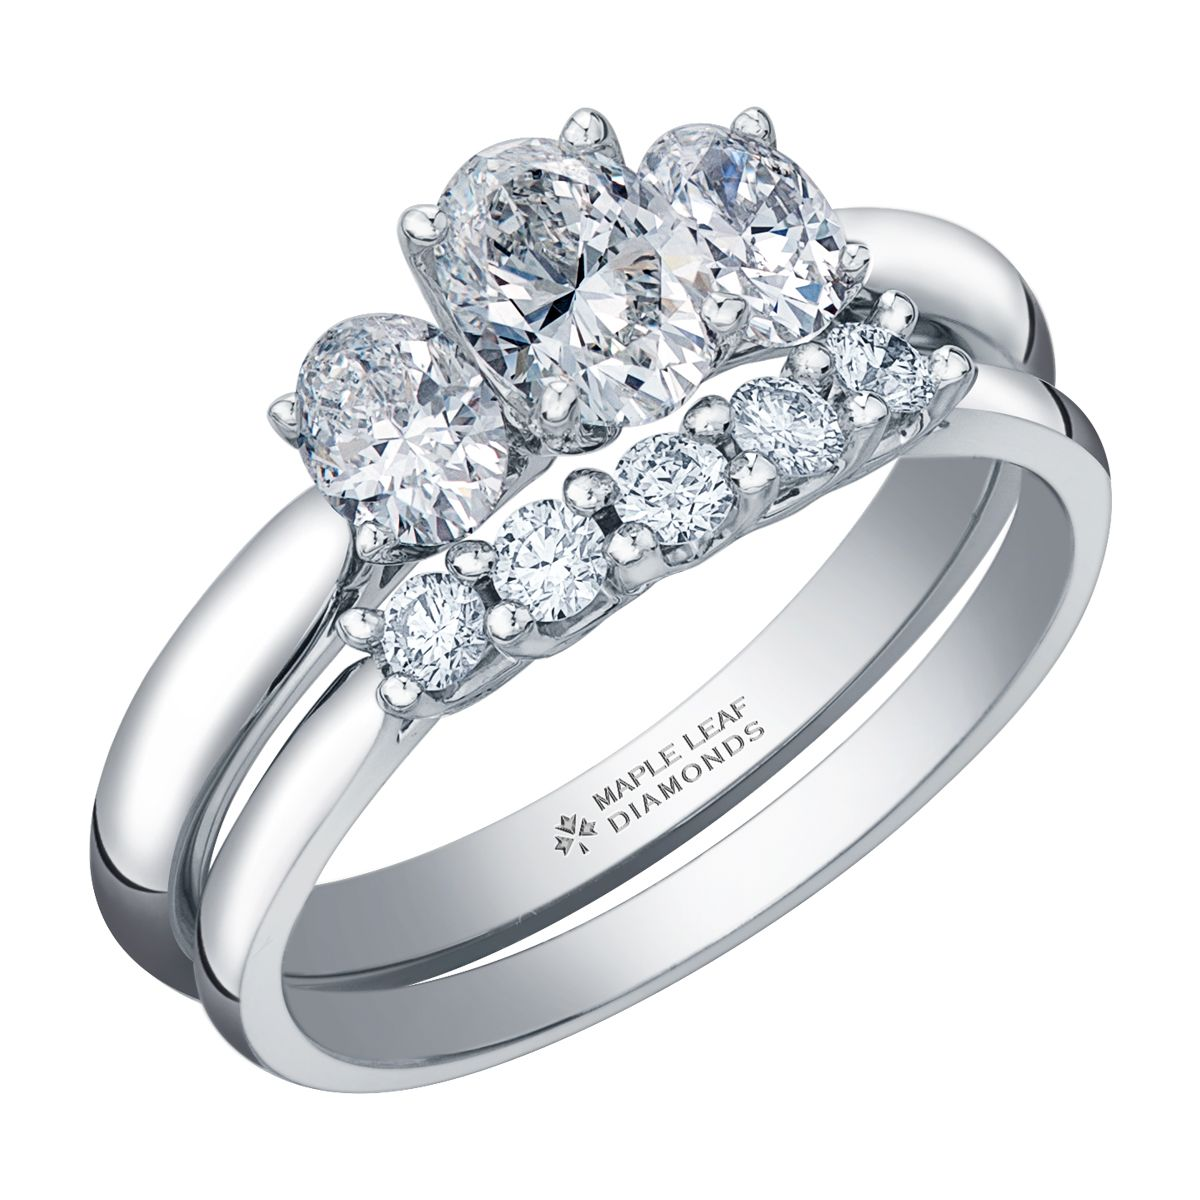 Three stone oval diamond engagement ring pictured with a